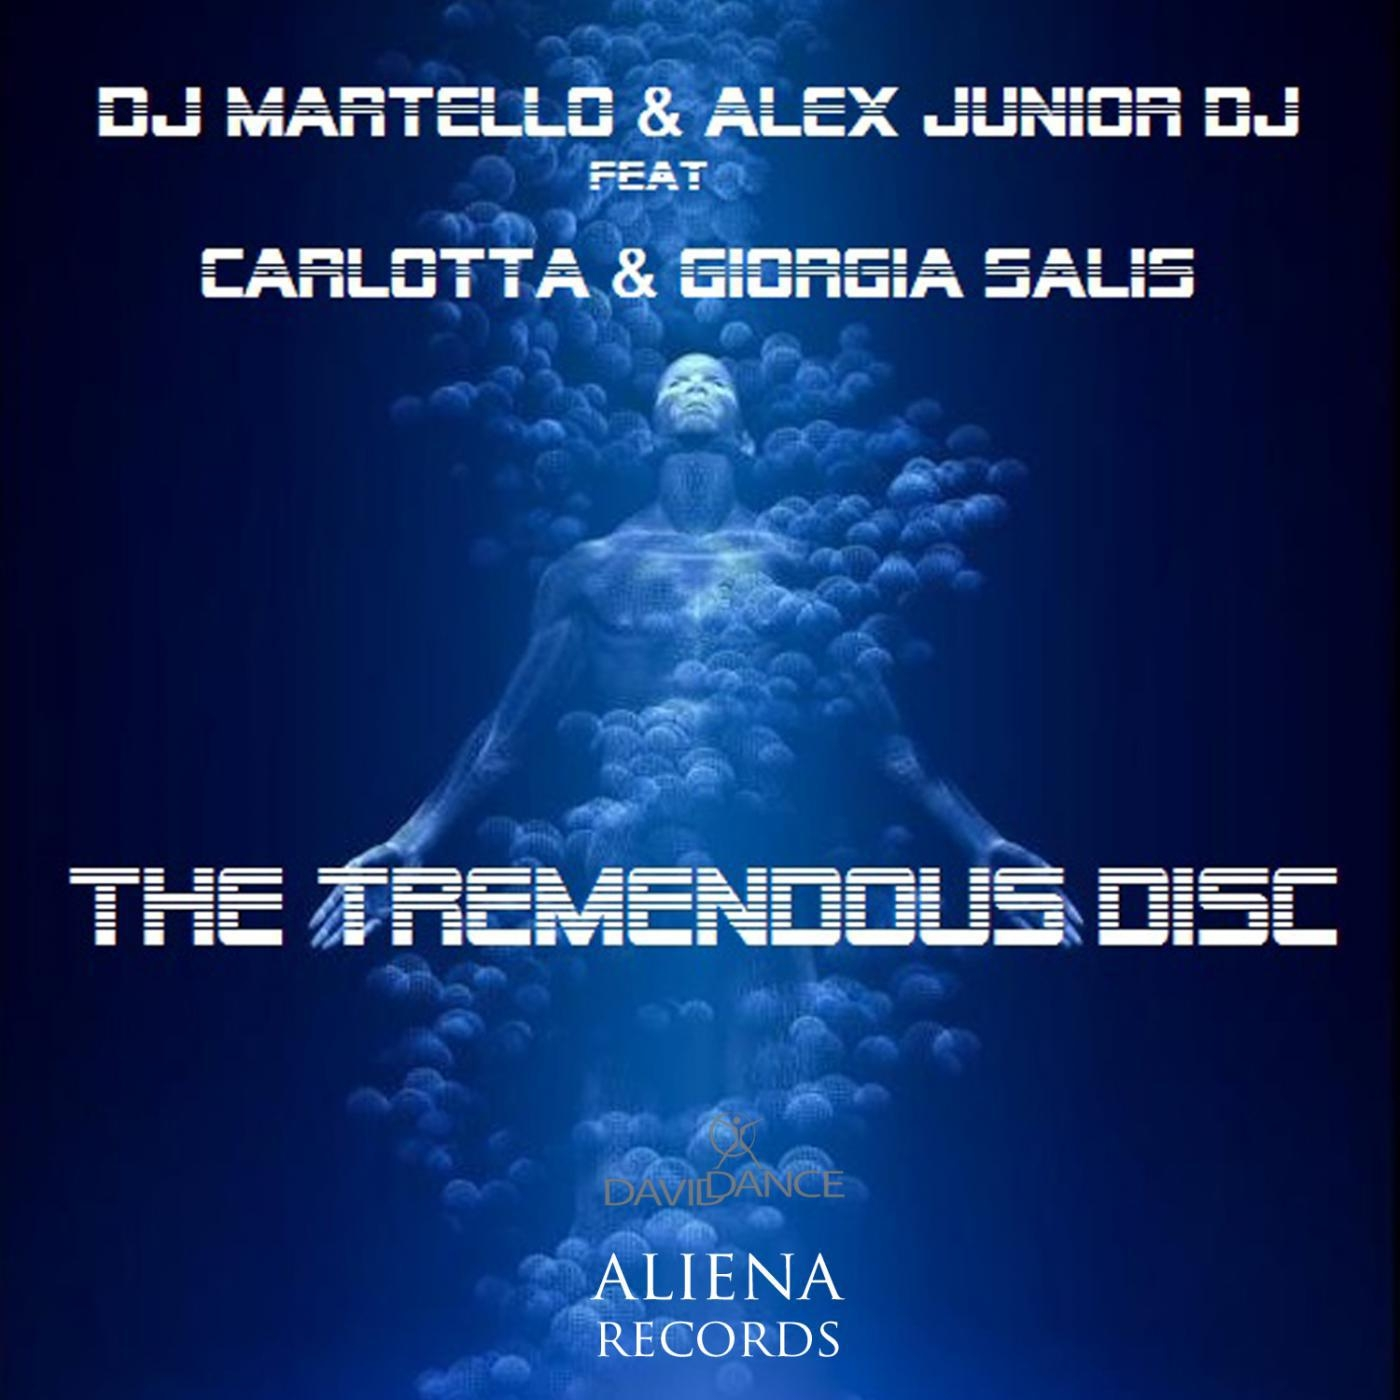 Dj Martello & Alex Junior DJ - The Tremendous Disc (feat. Carlotta & Giorgia Salis) (Original mix)